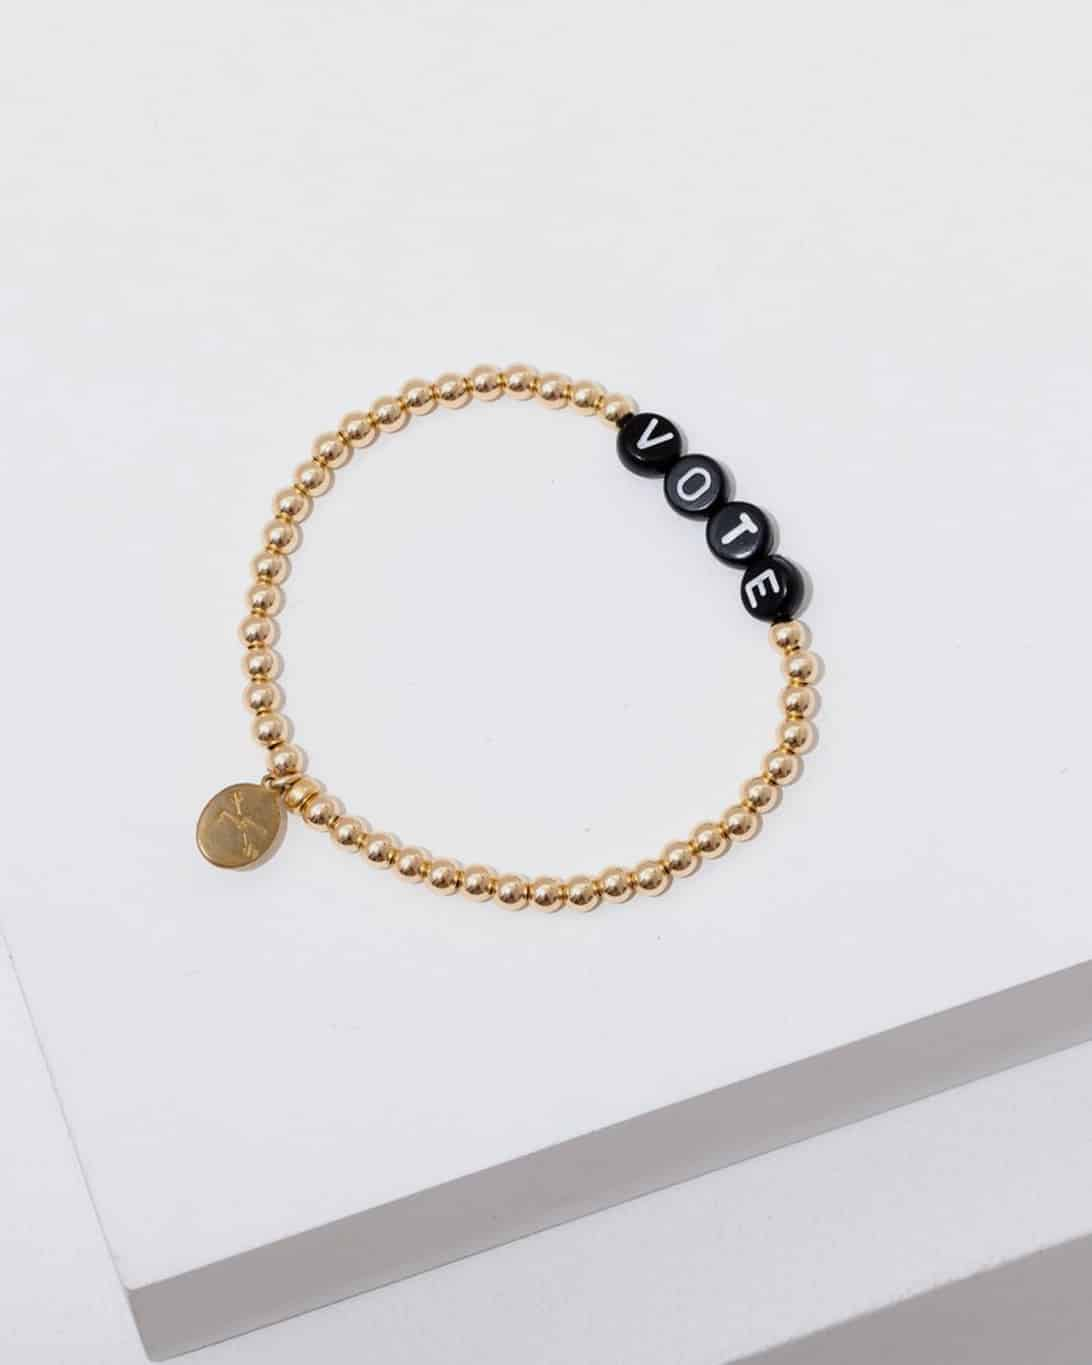 brass necklace that says voite in black letters